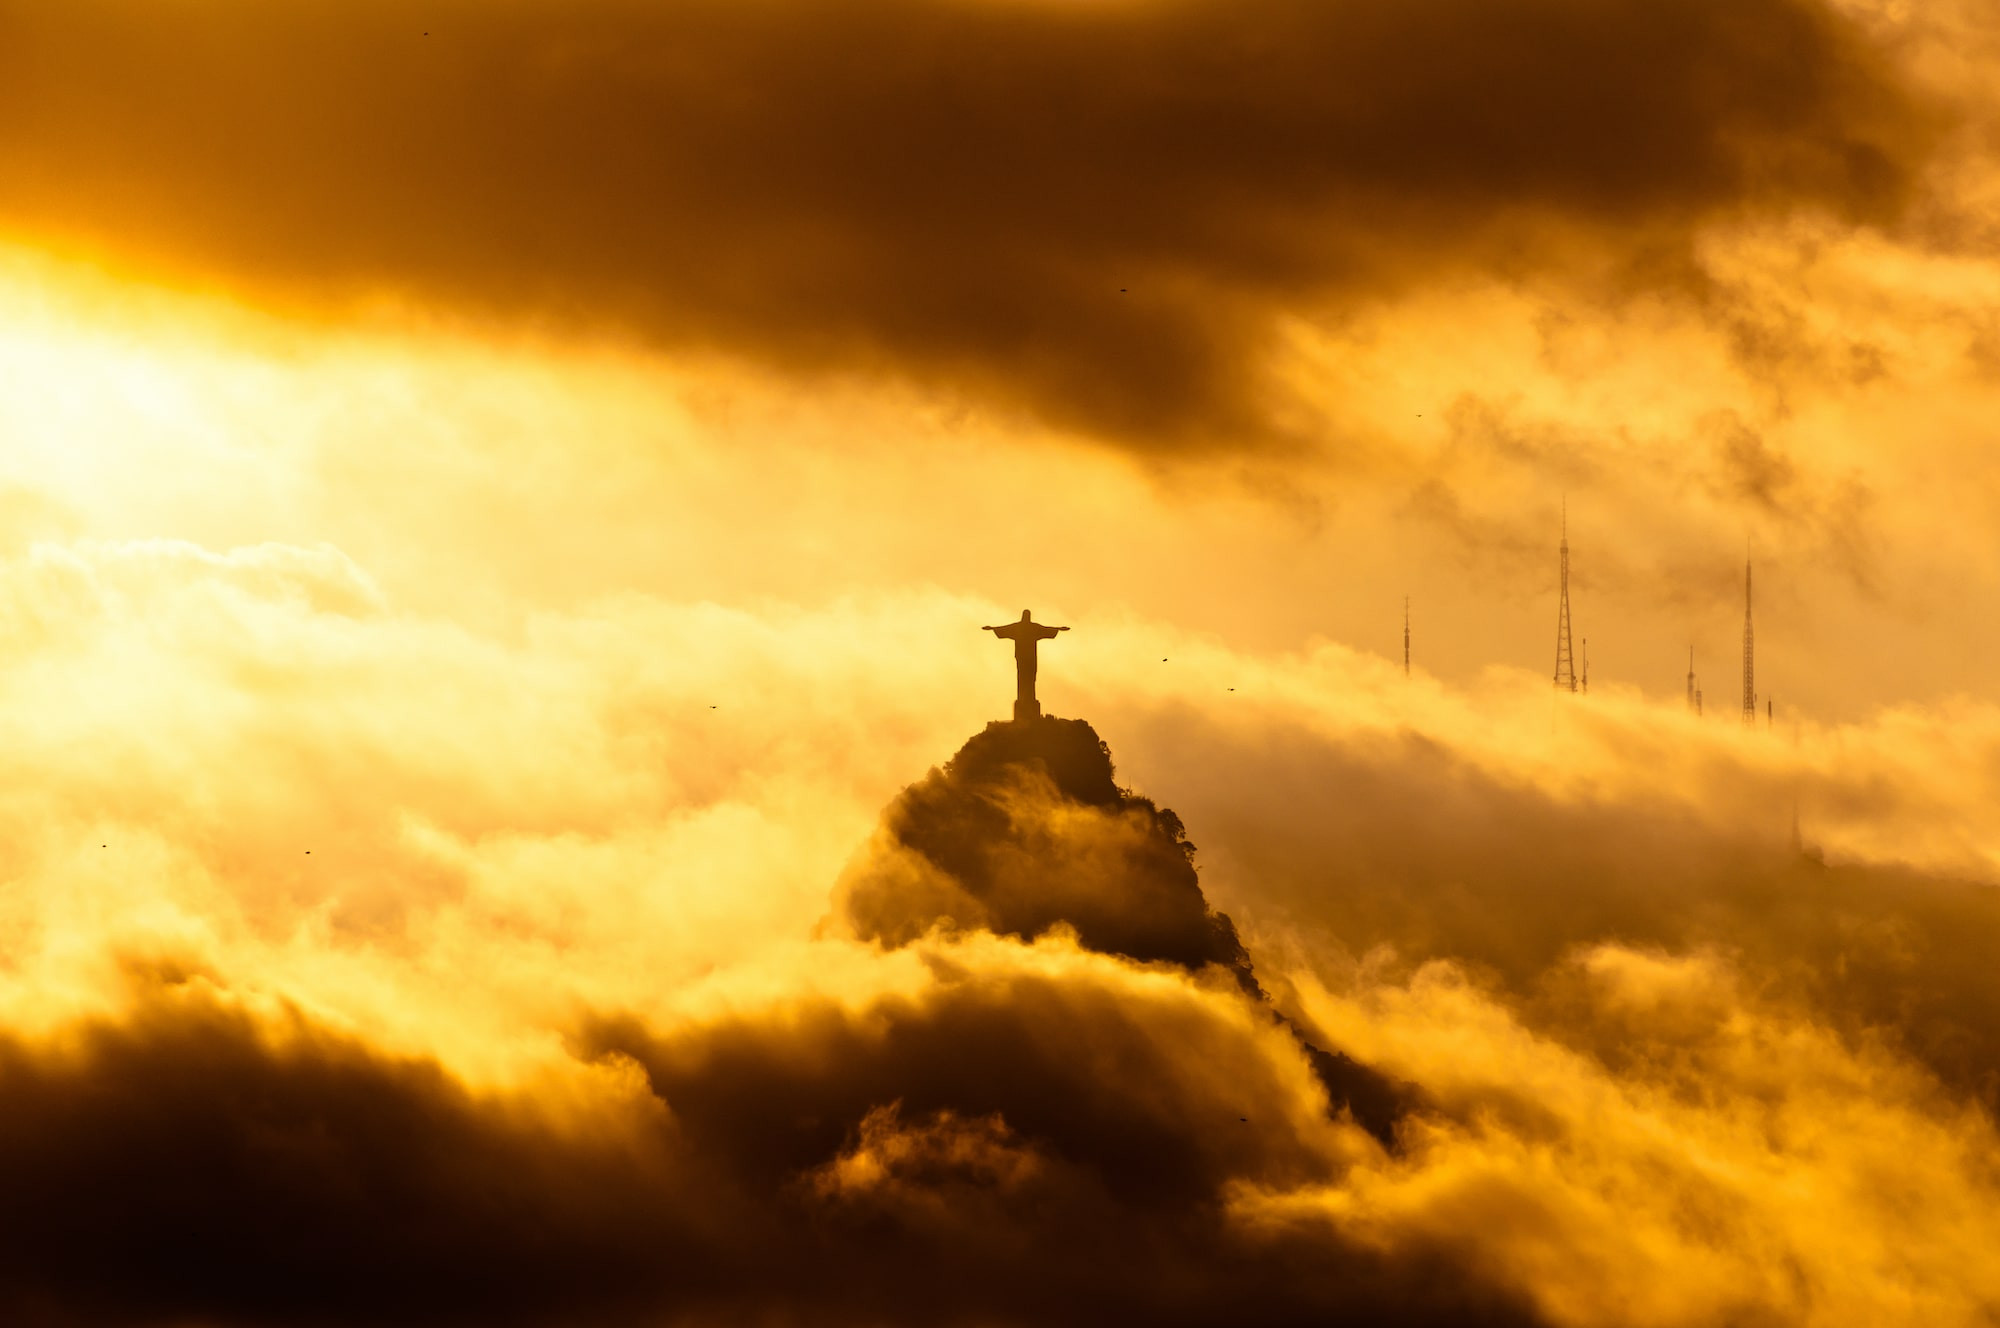 Christ the Redeemer in the clouds around Rio